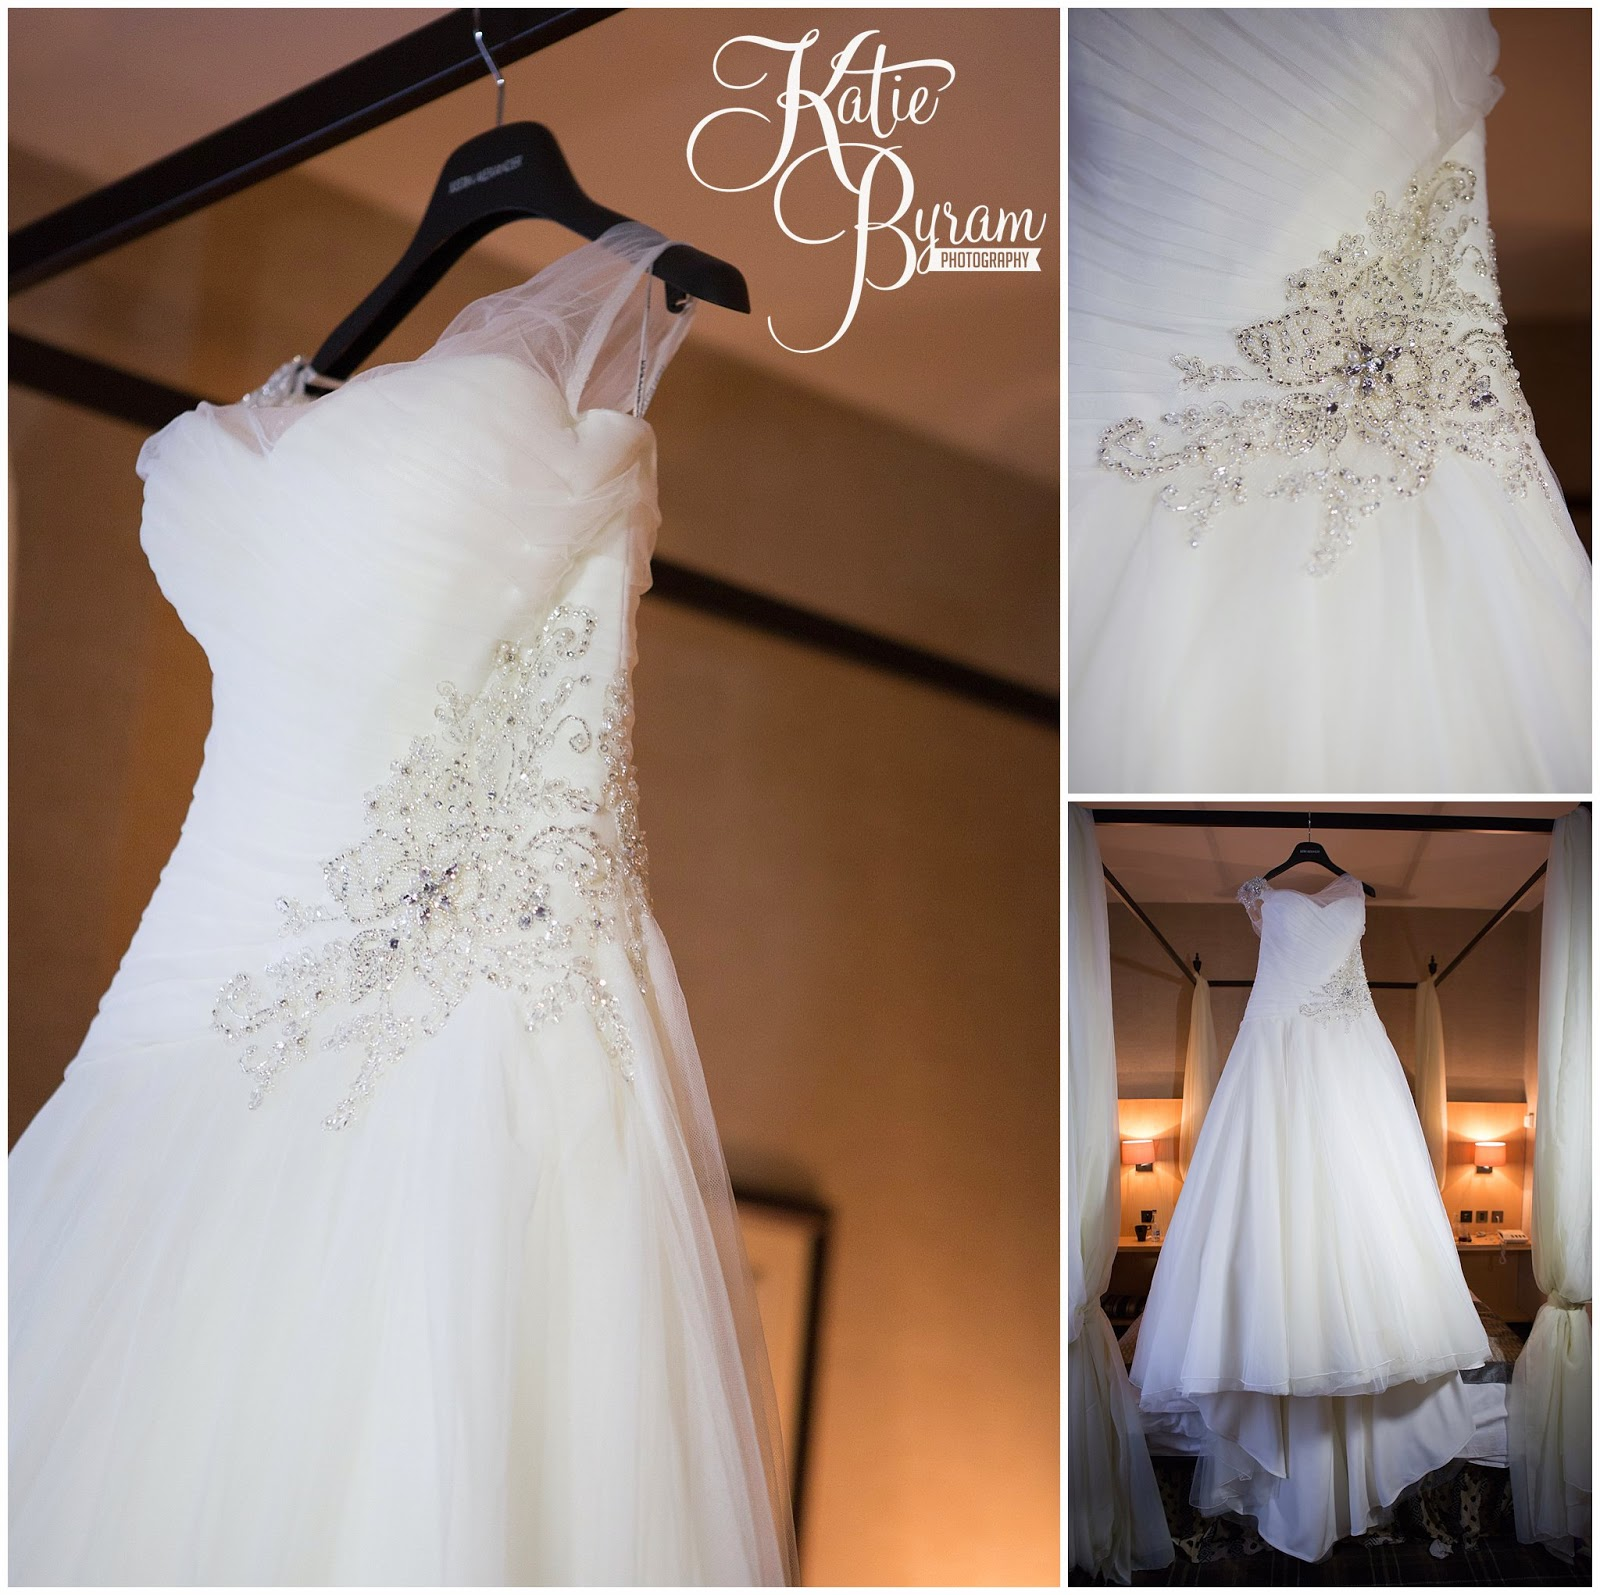 justin alexander wedding dress, bridal wish blagdon, newcastle city centre wedding, the vermont hotel,vermont weddings, newcastle wedding venue, katie byram photography, hotel wedding newcastle, quayside, nighttime wedding photographs